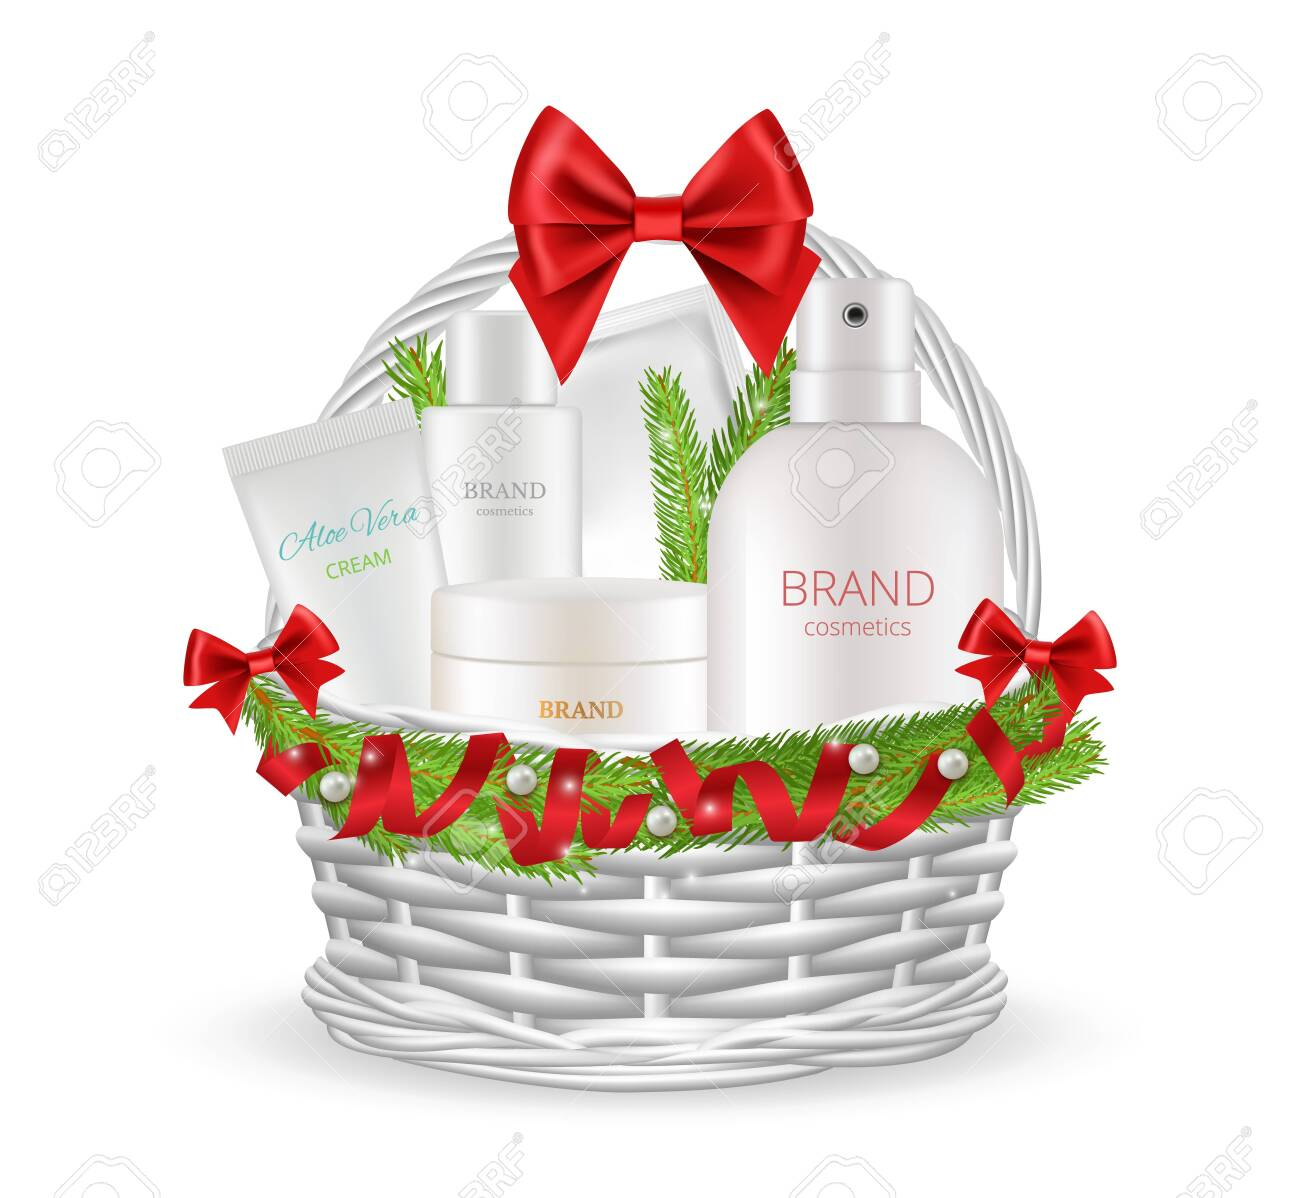 Holiday Gift Realistic Christmas Basket With Different Cosmetics Royalty Free Cliparts Vectors And Stock Illustration Image 153719842